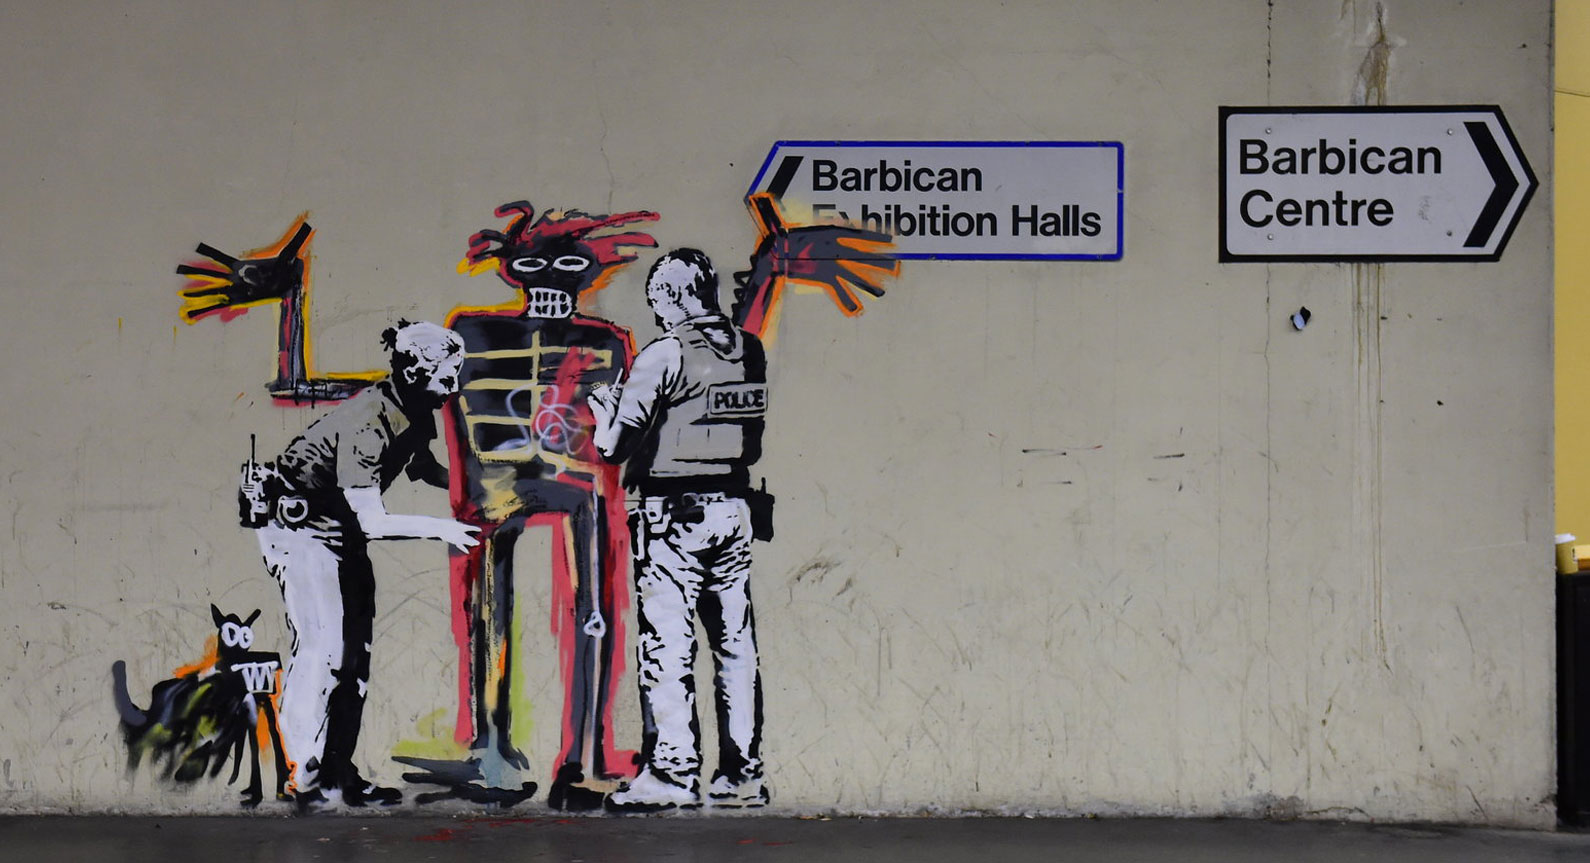 Banksy Strikes Again With Two New Murals That Pay Tribute to Basquiat at the Barbican